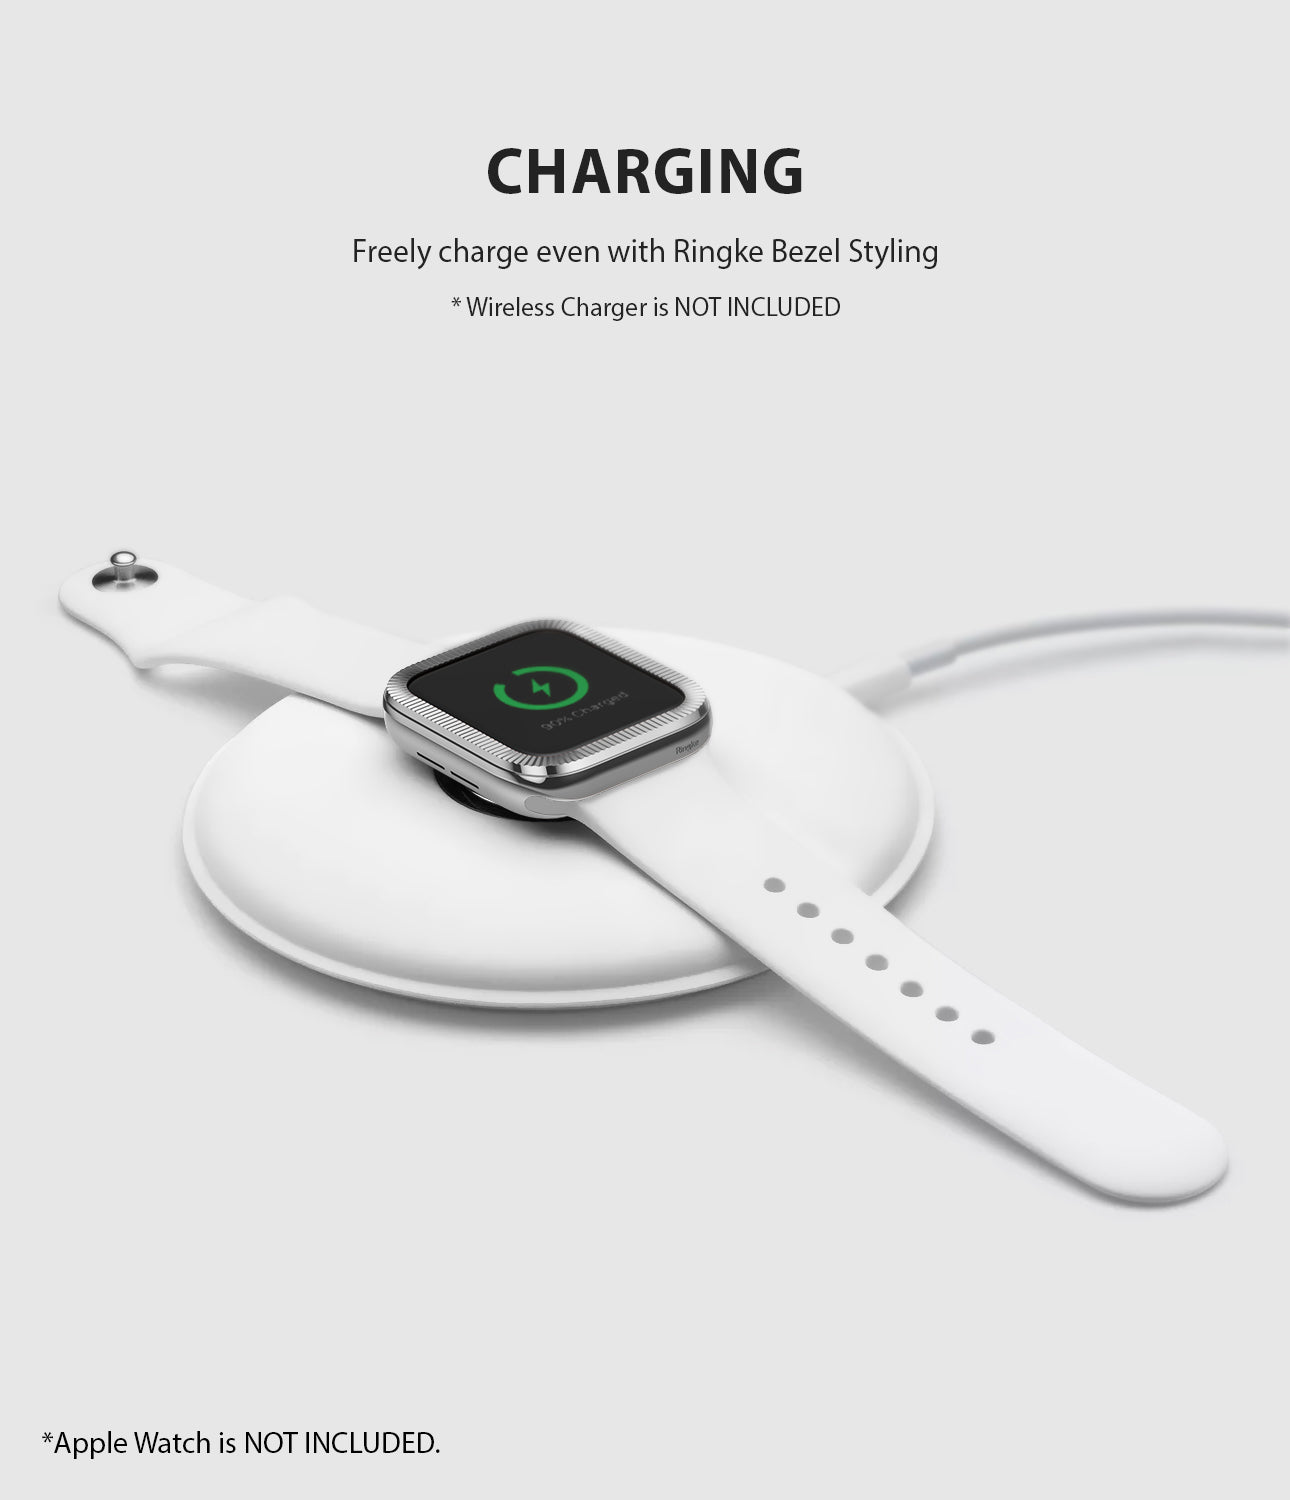 apple watch 3 2 1 38mm case ringke bezel styling stainless steel frame cover 38-42 wireless charging compatible